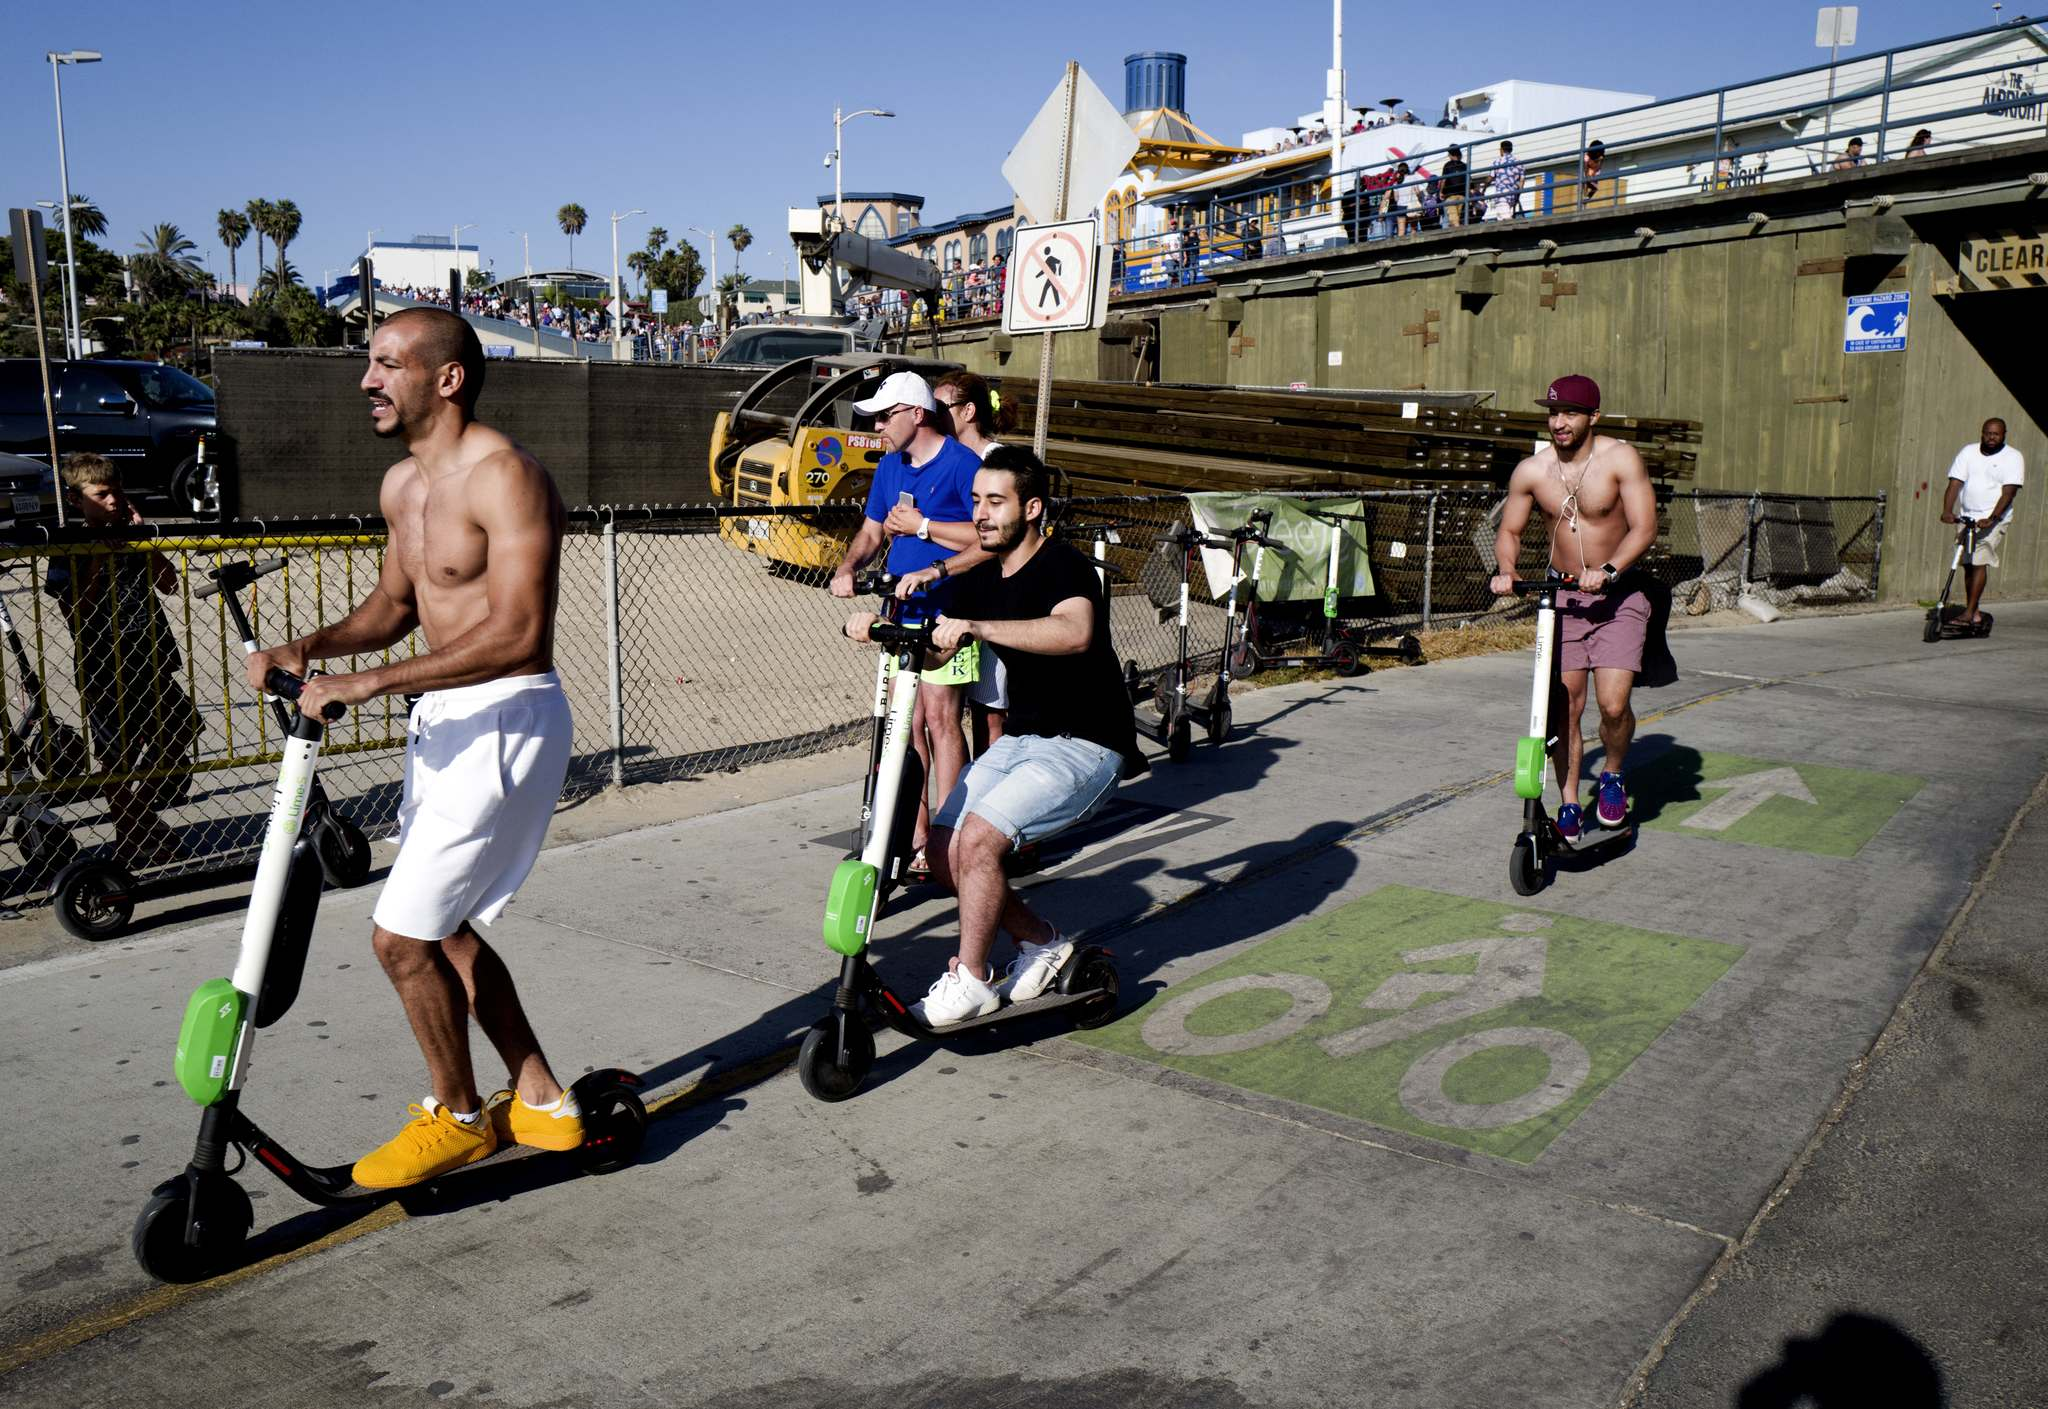 Some jurisdictions restrict the use of e-scooters to active transportation networks. (Richard Vogel / The Associted Press files)</p>